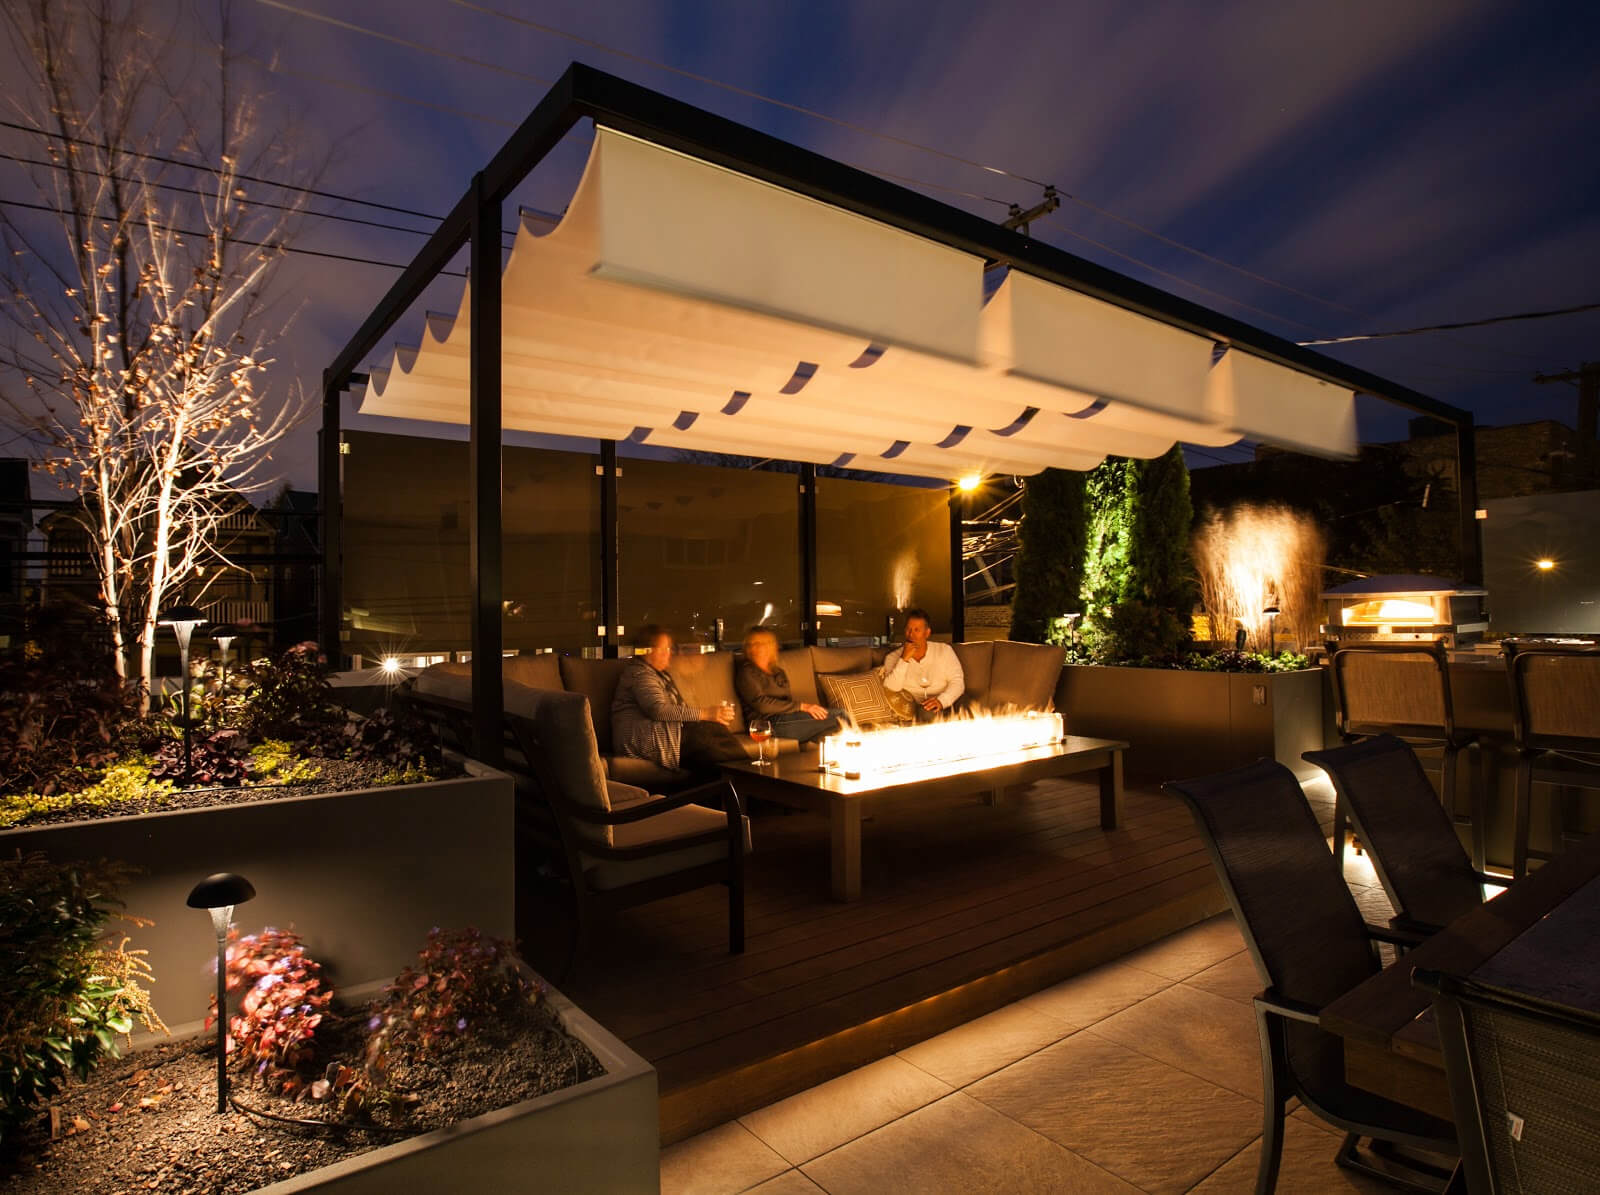 replace your current retractable awning